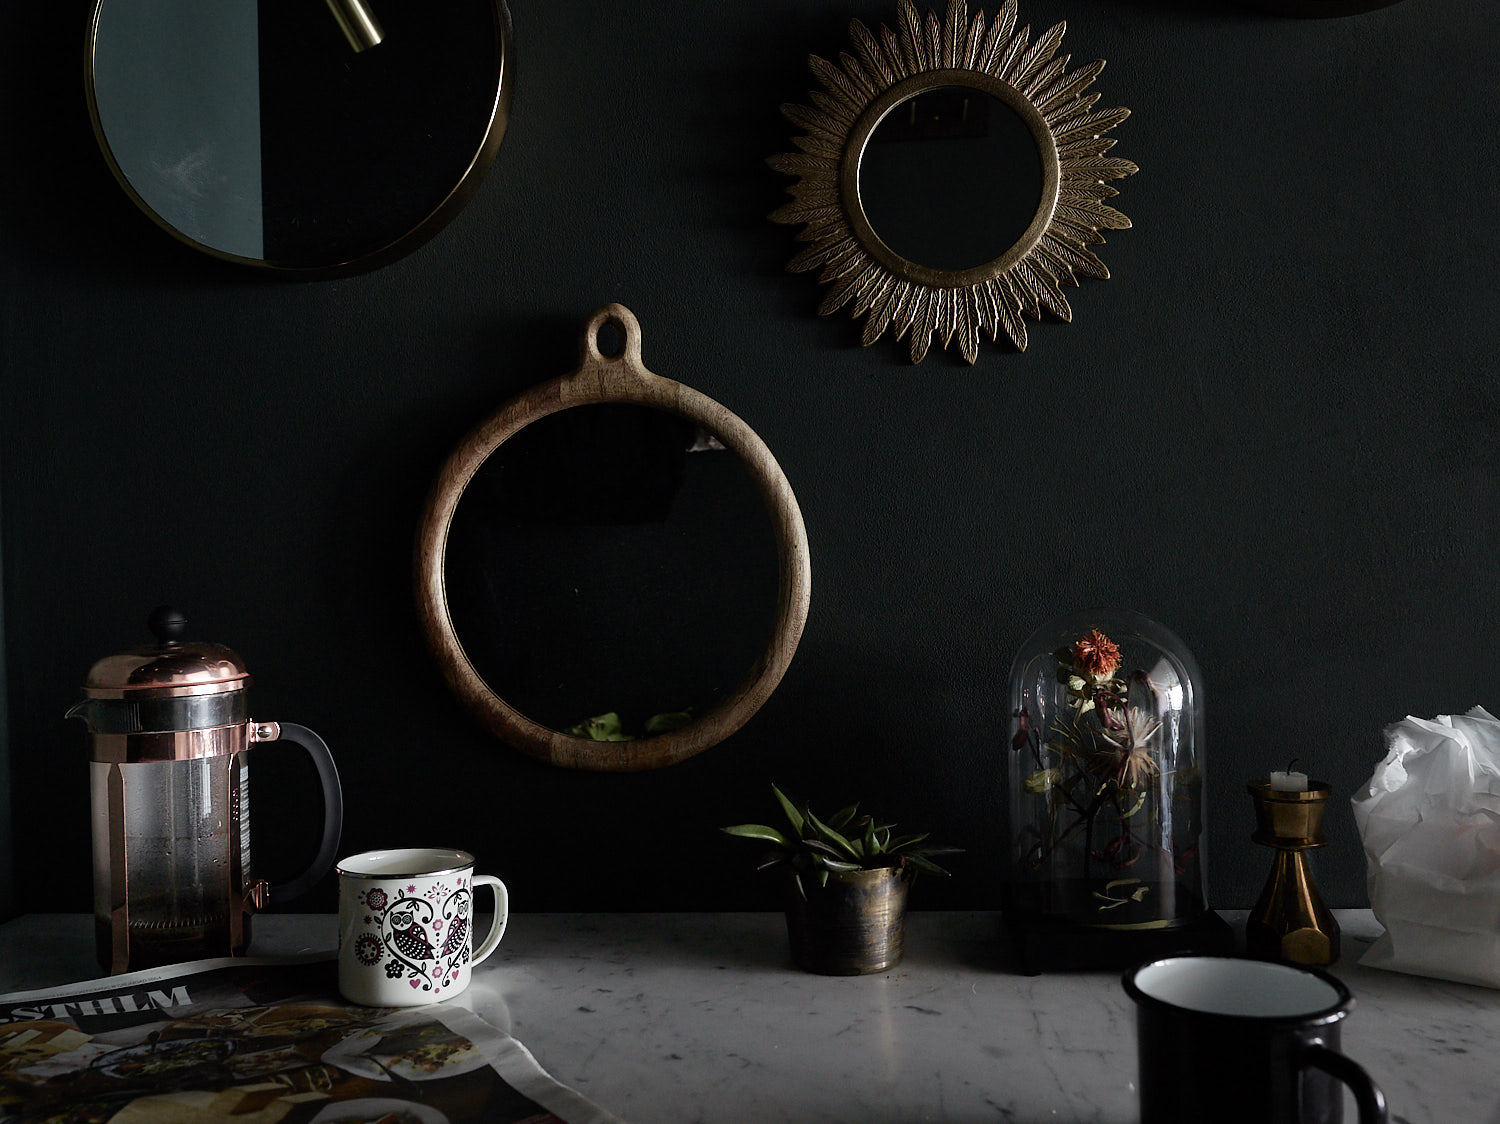 13. A Few Well Placed Objects Will Make a Space Feel Elevated & Chic